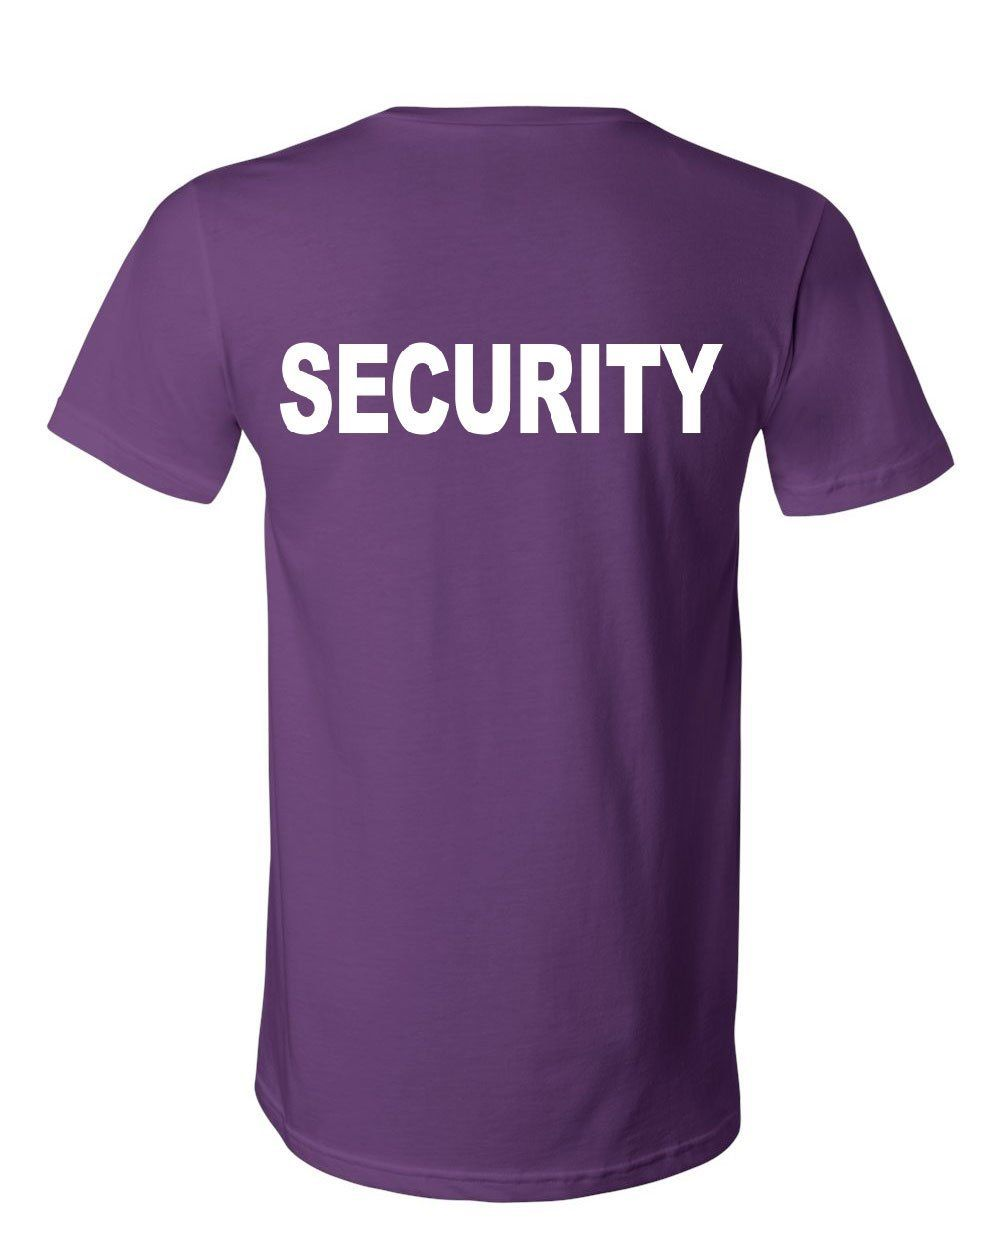 Security Women/'s V-Neck T-Shirt Bouncer Police Event Staff Uniform Guard